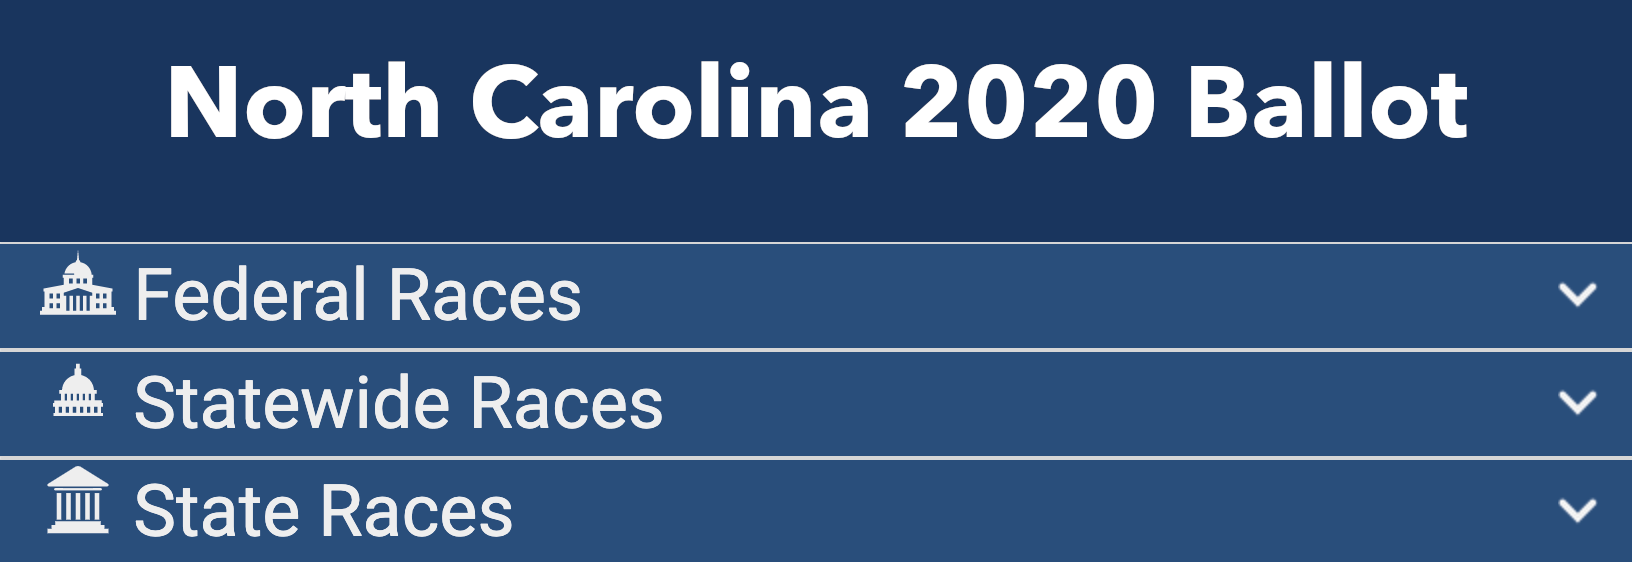 iVoterGuide for North Carolina